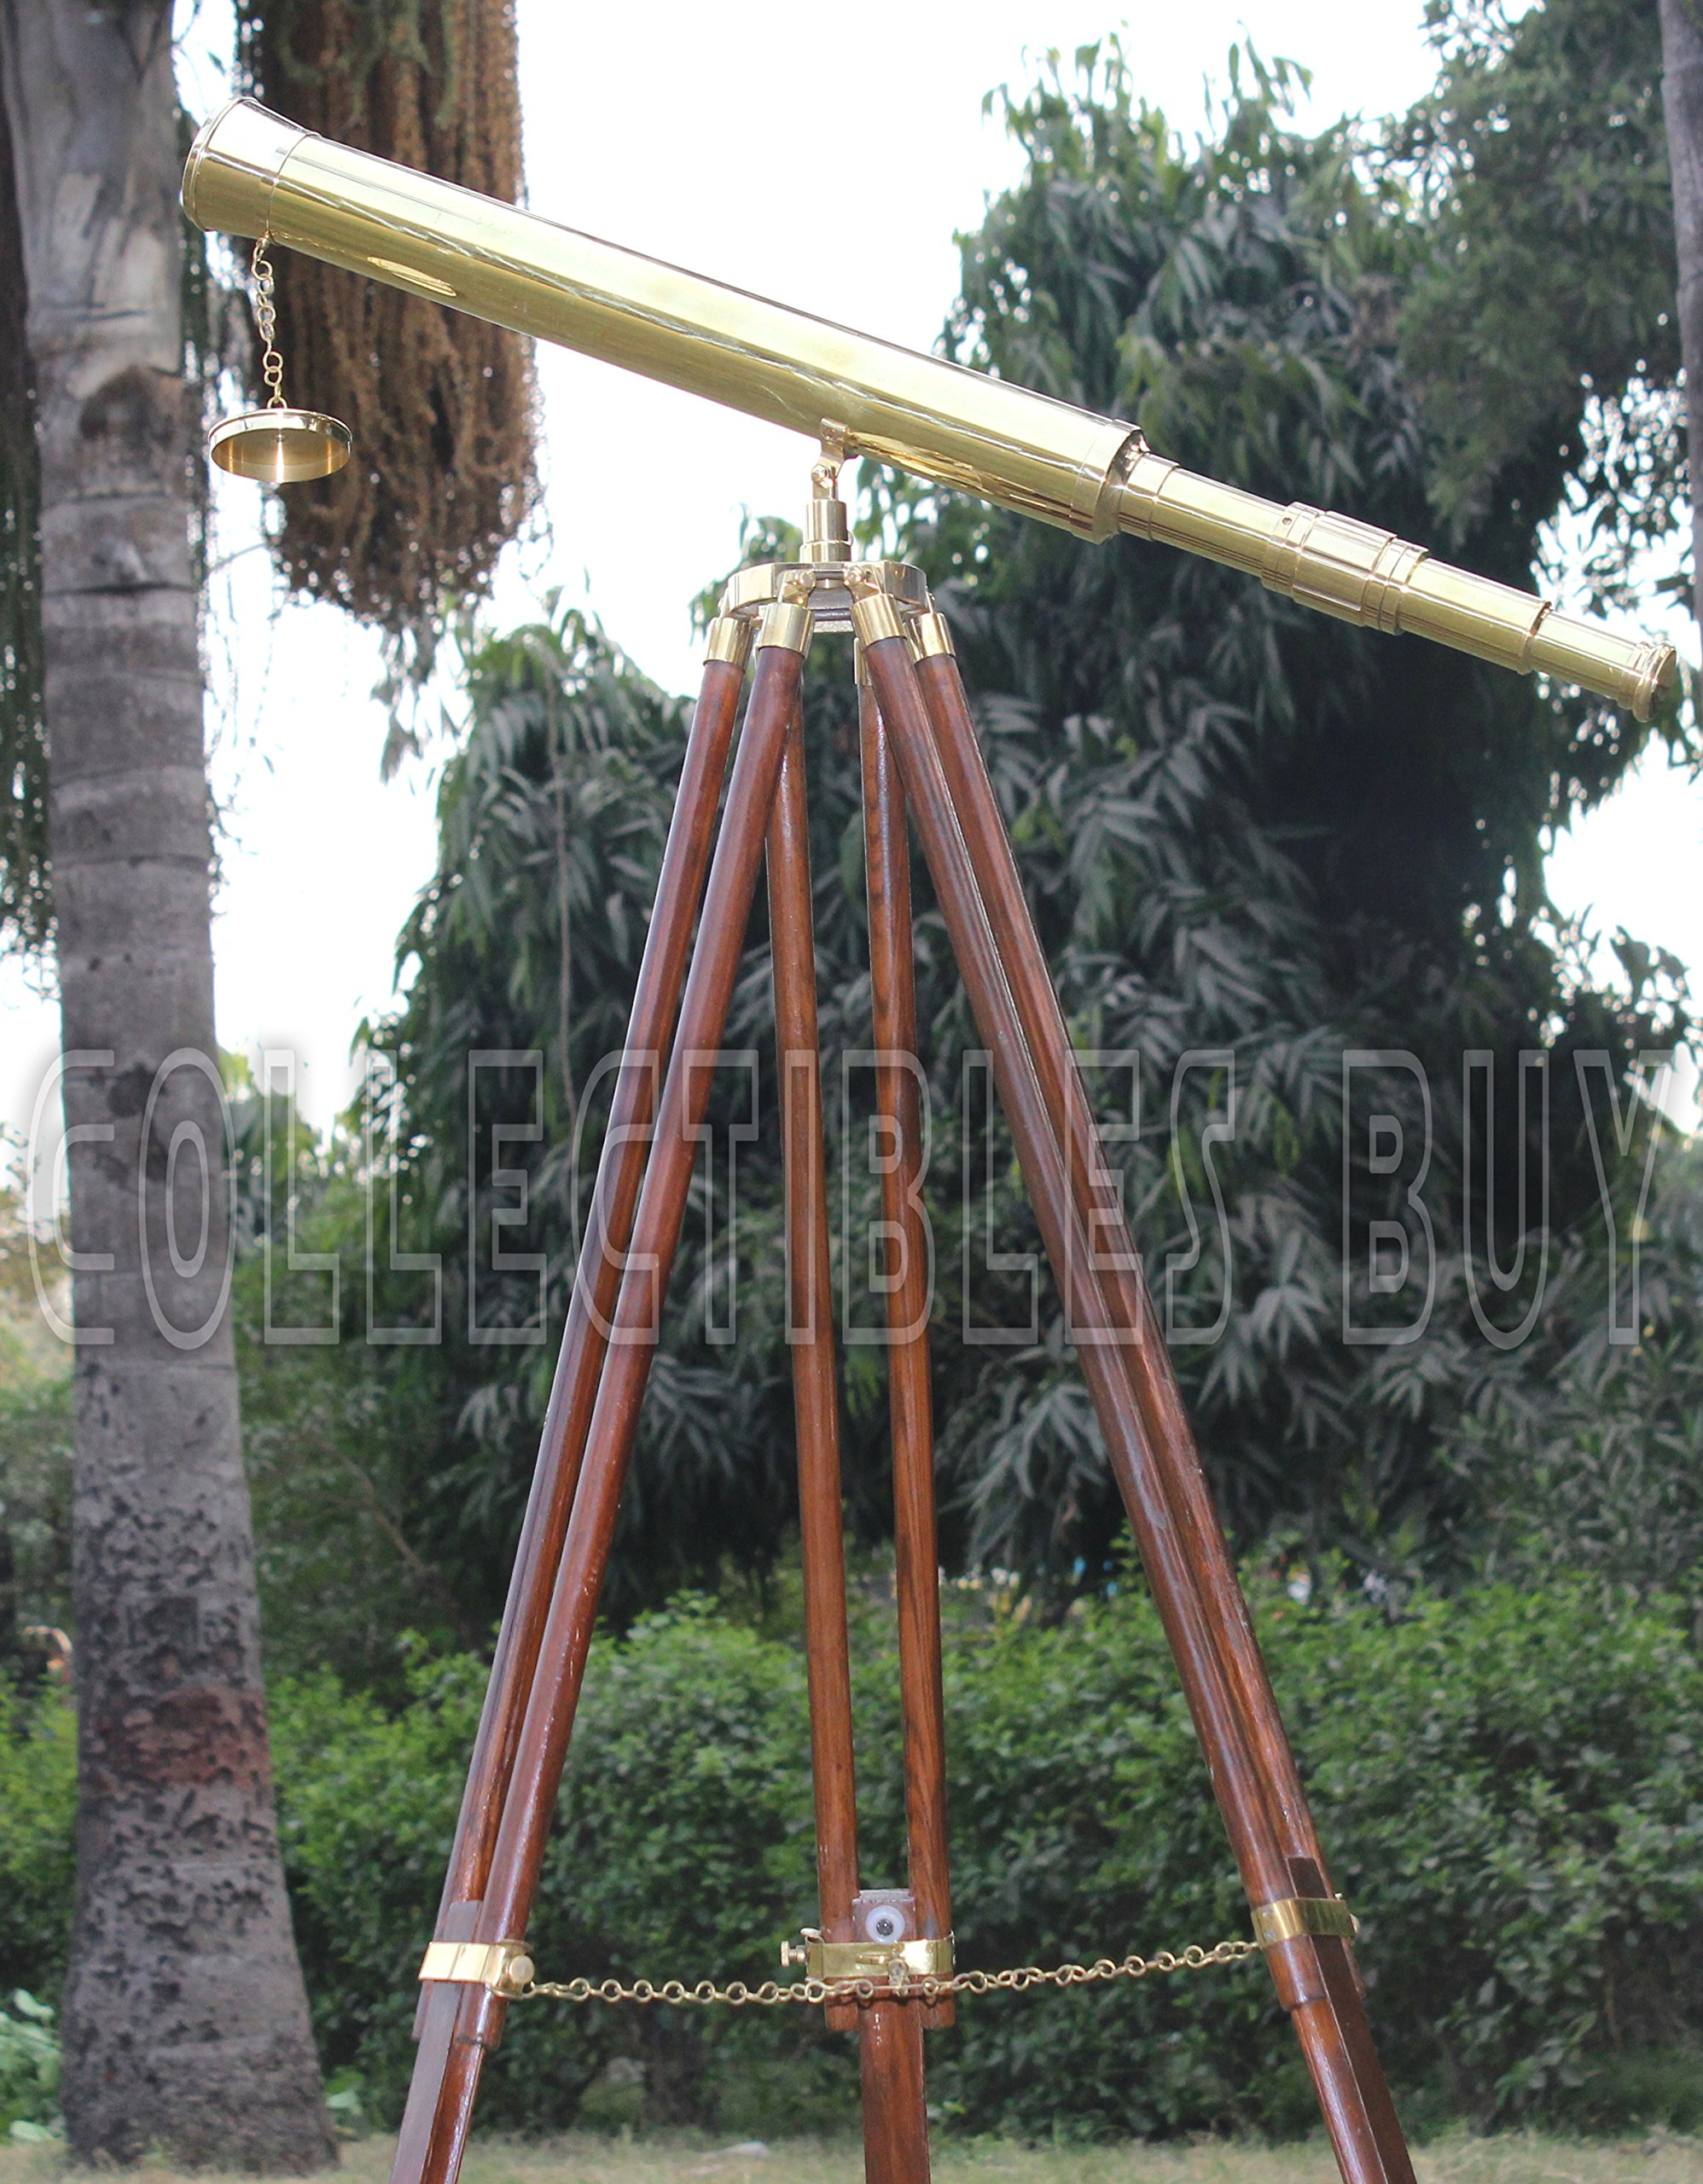 Shiny Brass Nautical Single Barrel Telescope Wooden Tripod Ideal Home Decor Brass Finish & Brown by Collectibles Buy